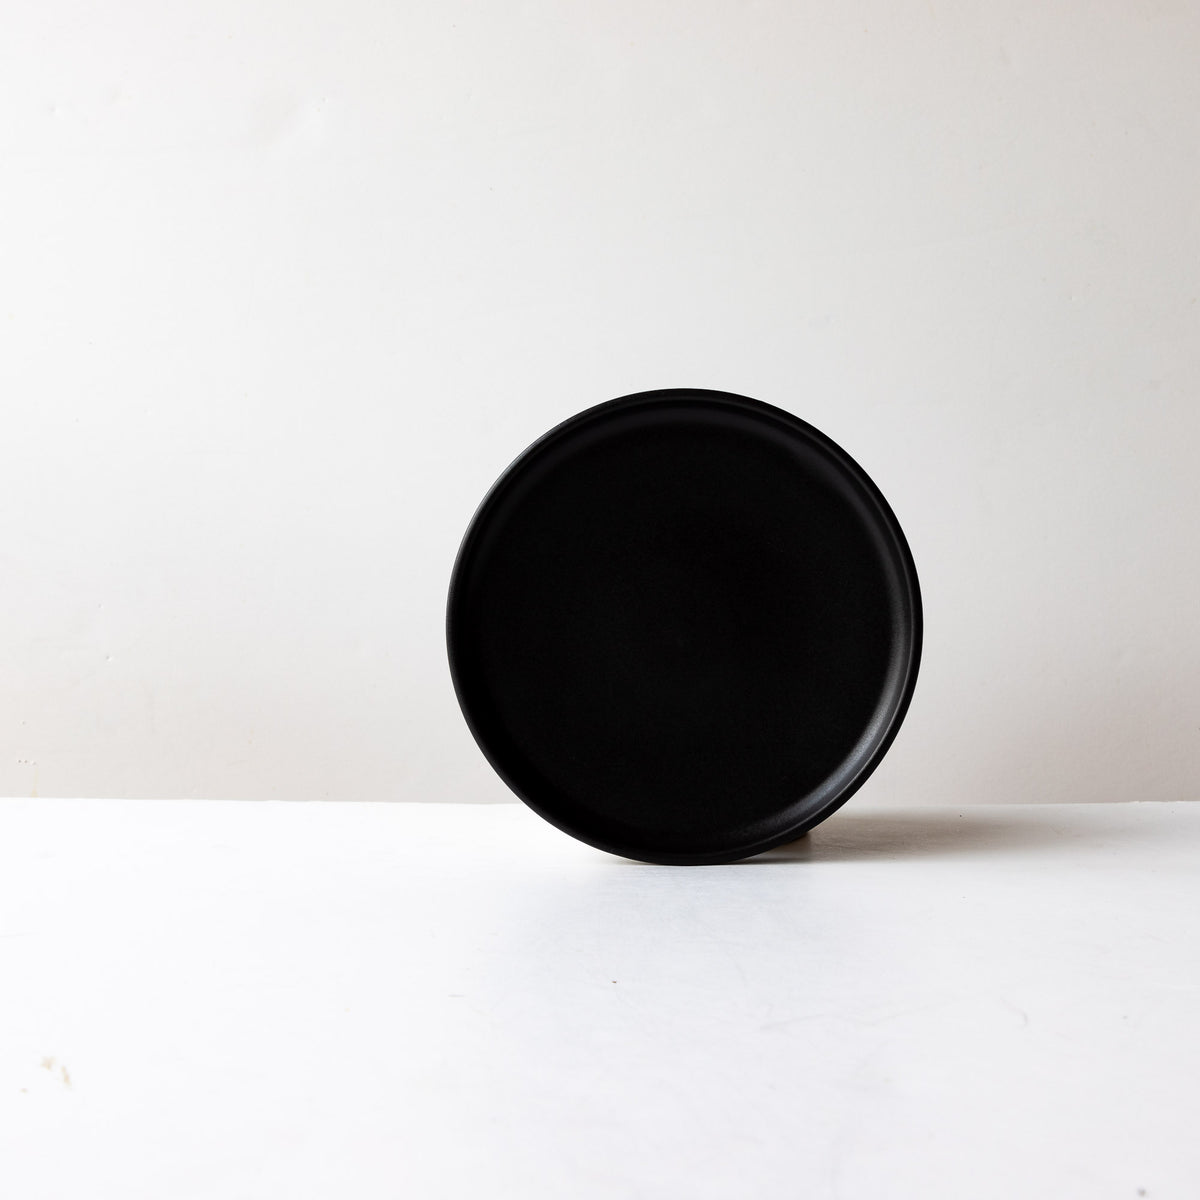 Front View - Black Satin Glaze Hand Thrown Small Porcelain Plate - Sold by Chic & Basta